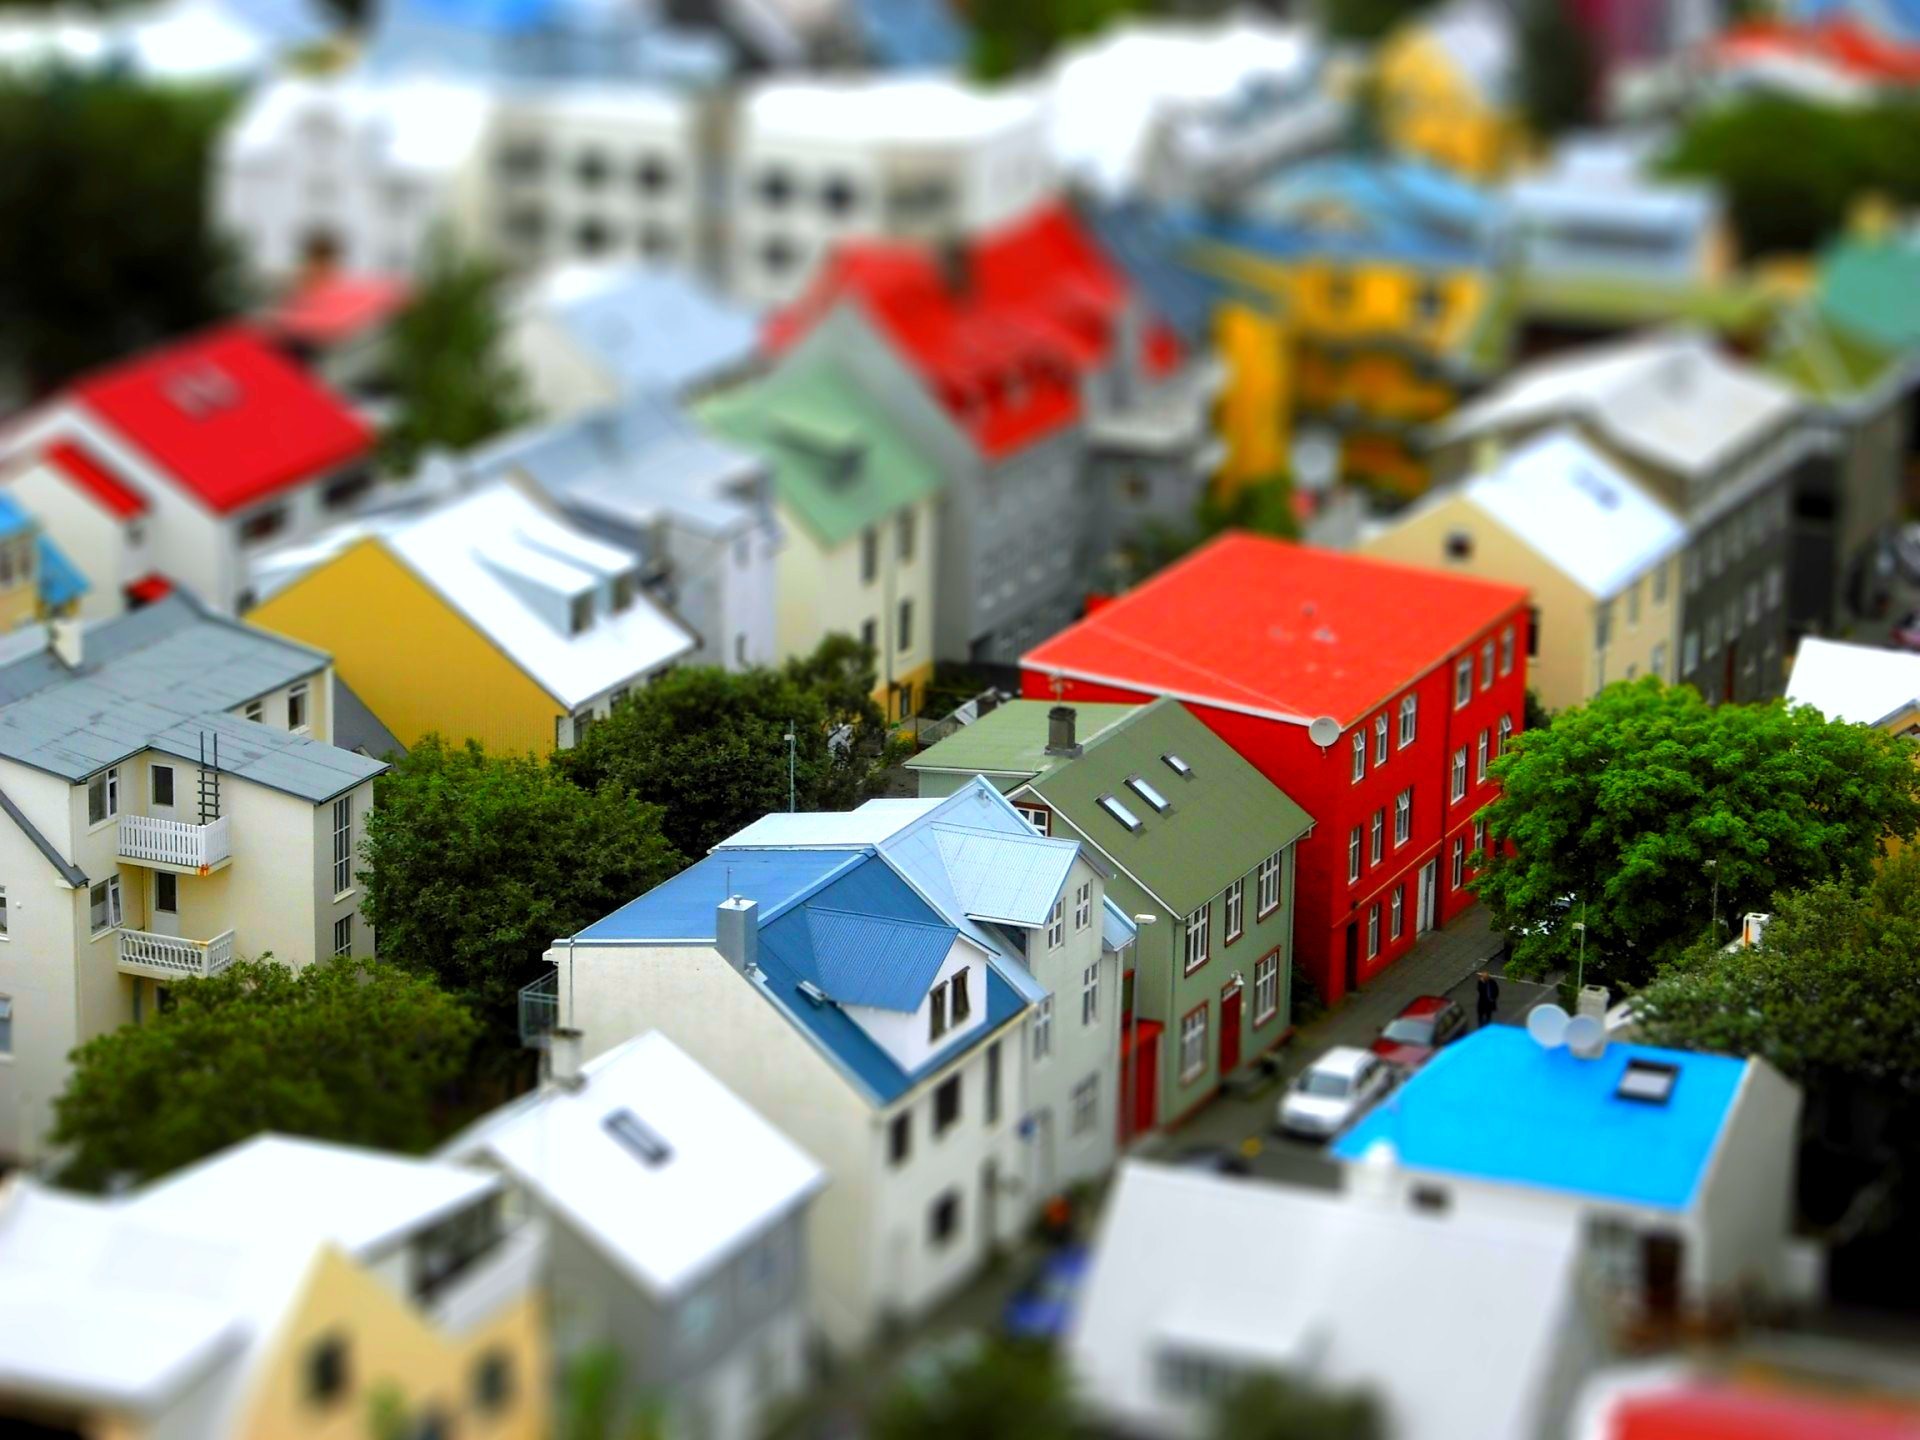 Global residential real estate price growth slows in Q3